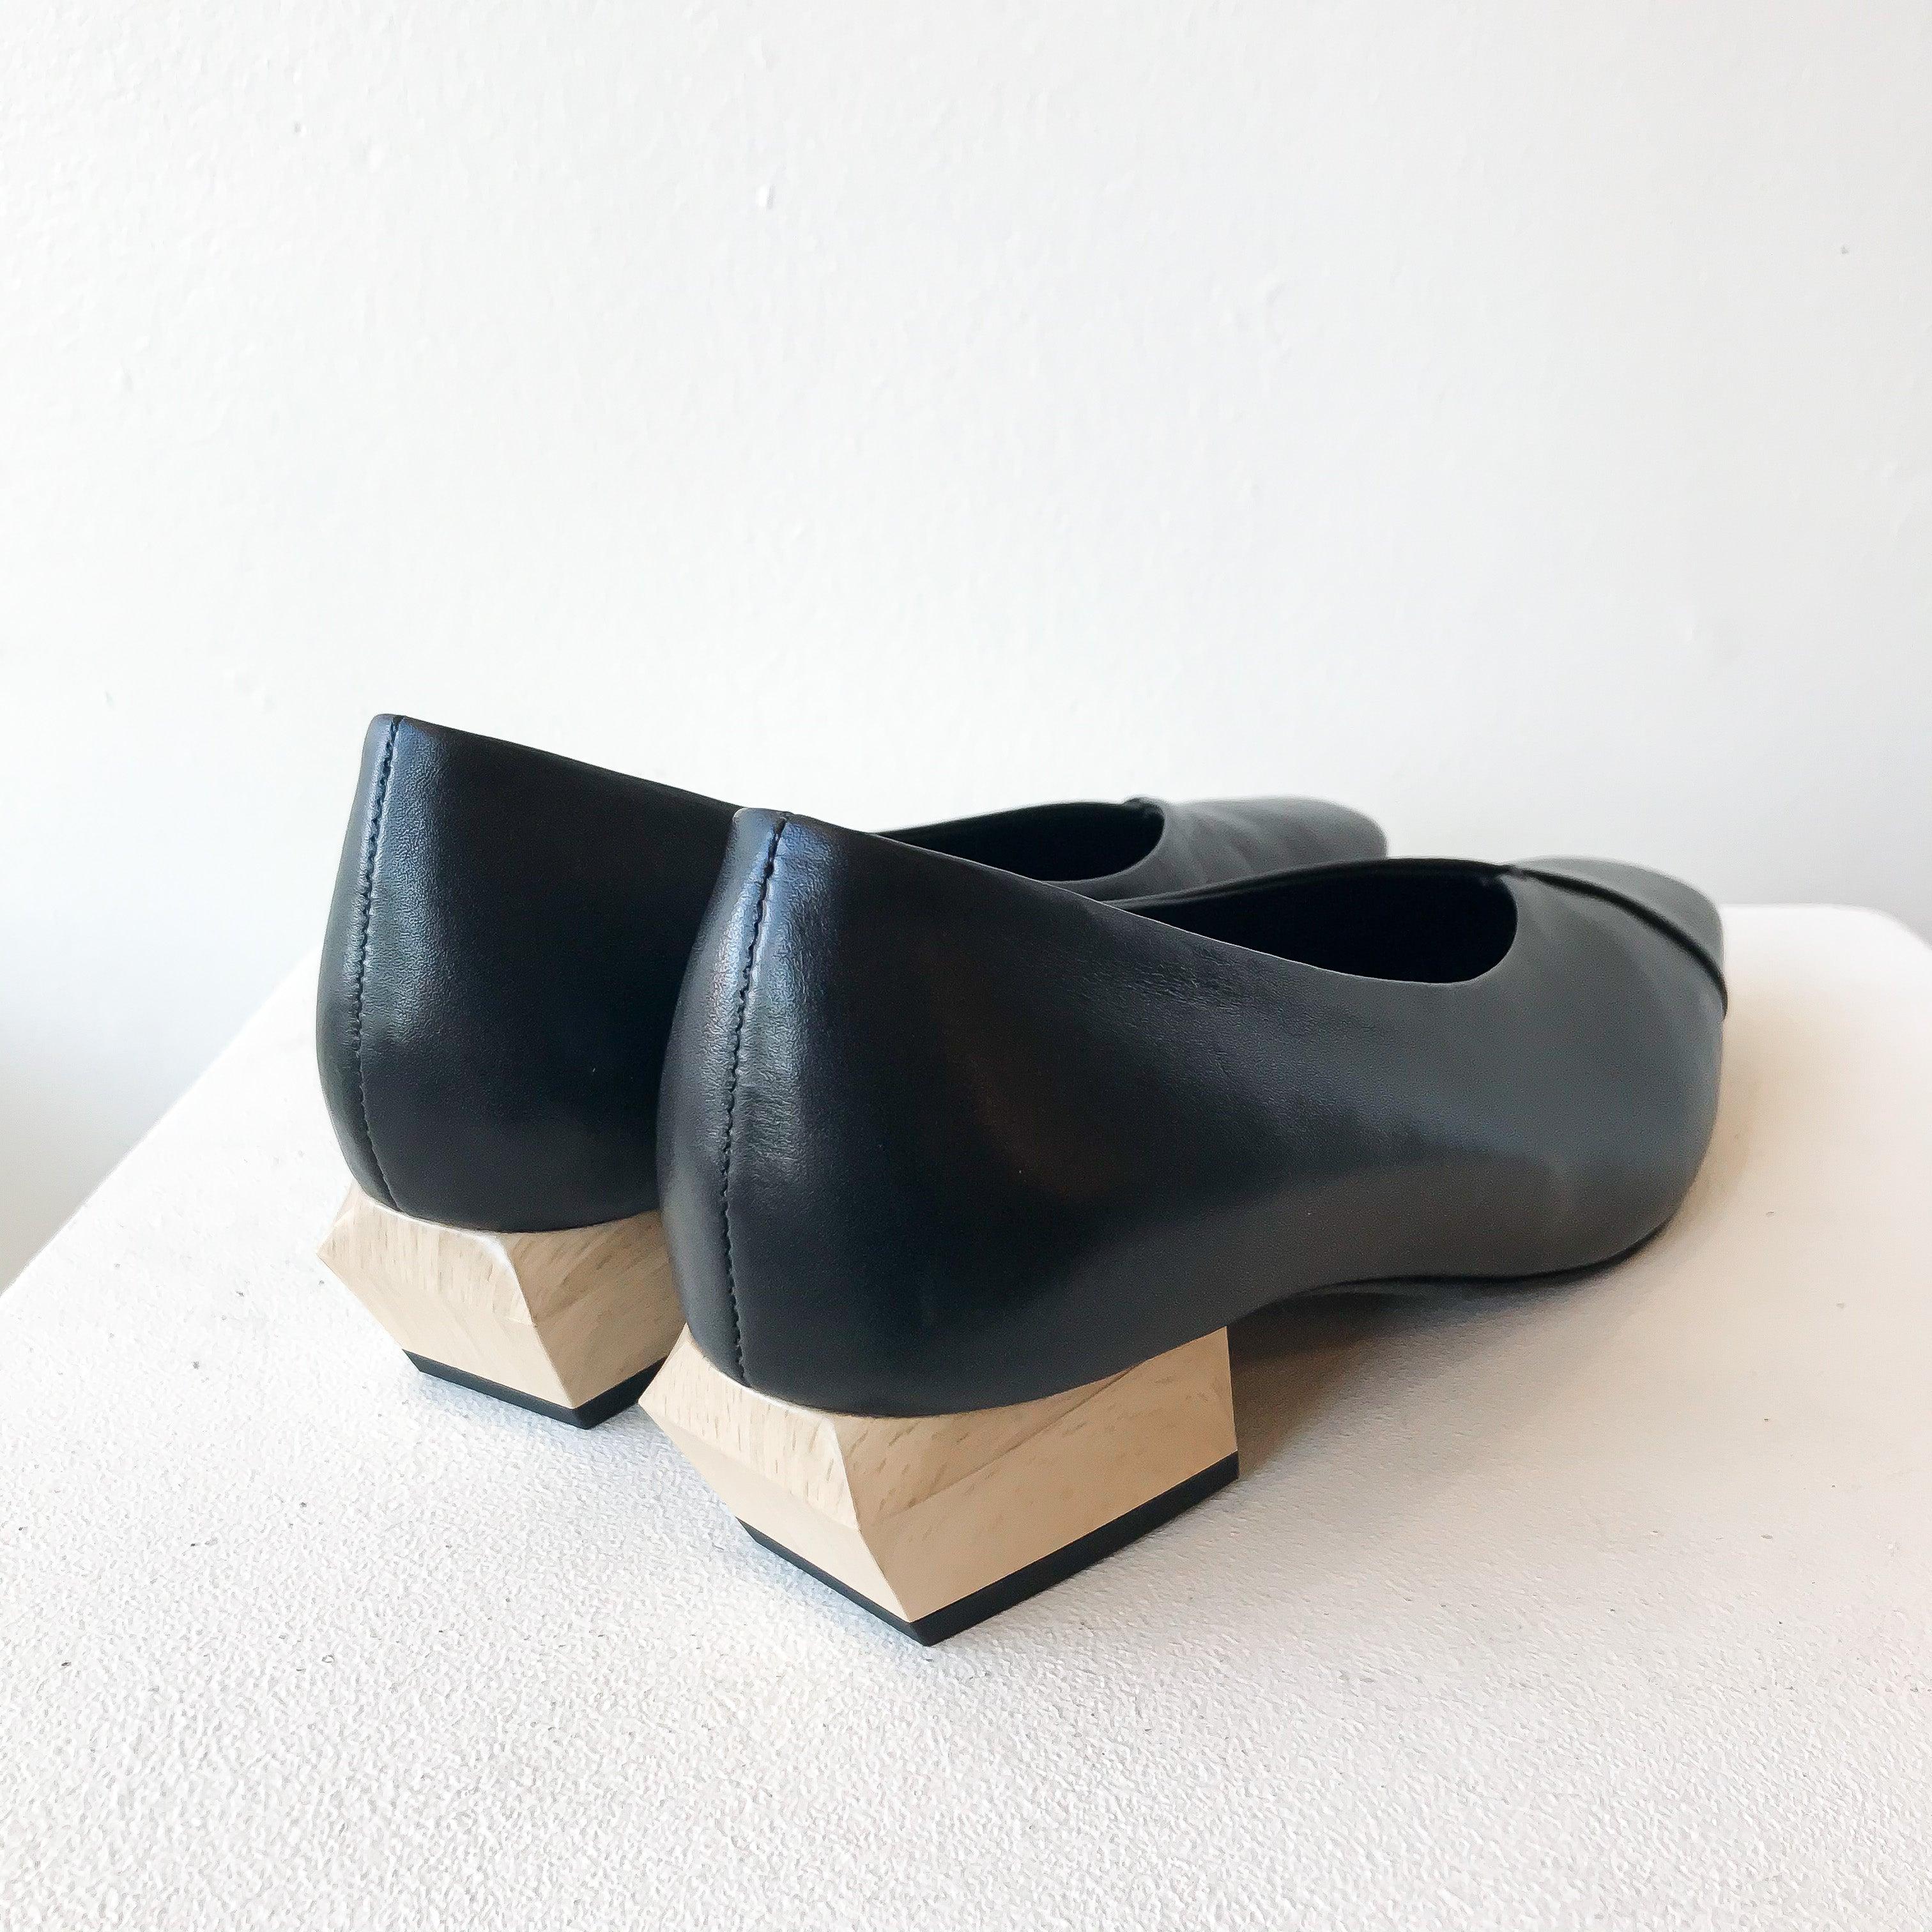 FW20 791030-1 | Square Toe Heels - Black | Yuko Imanishi+